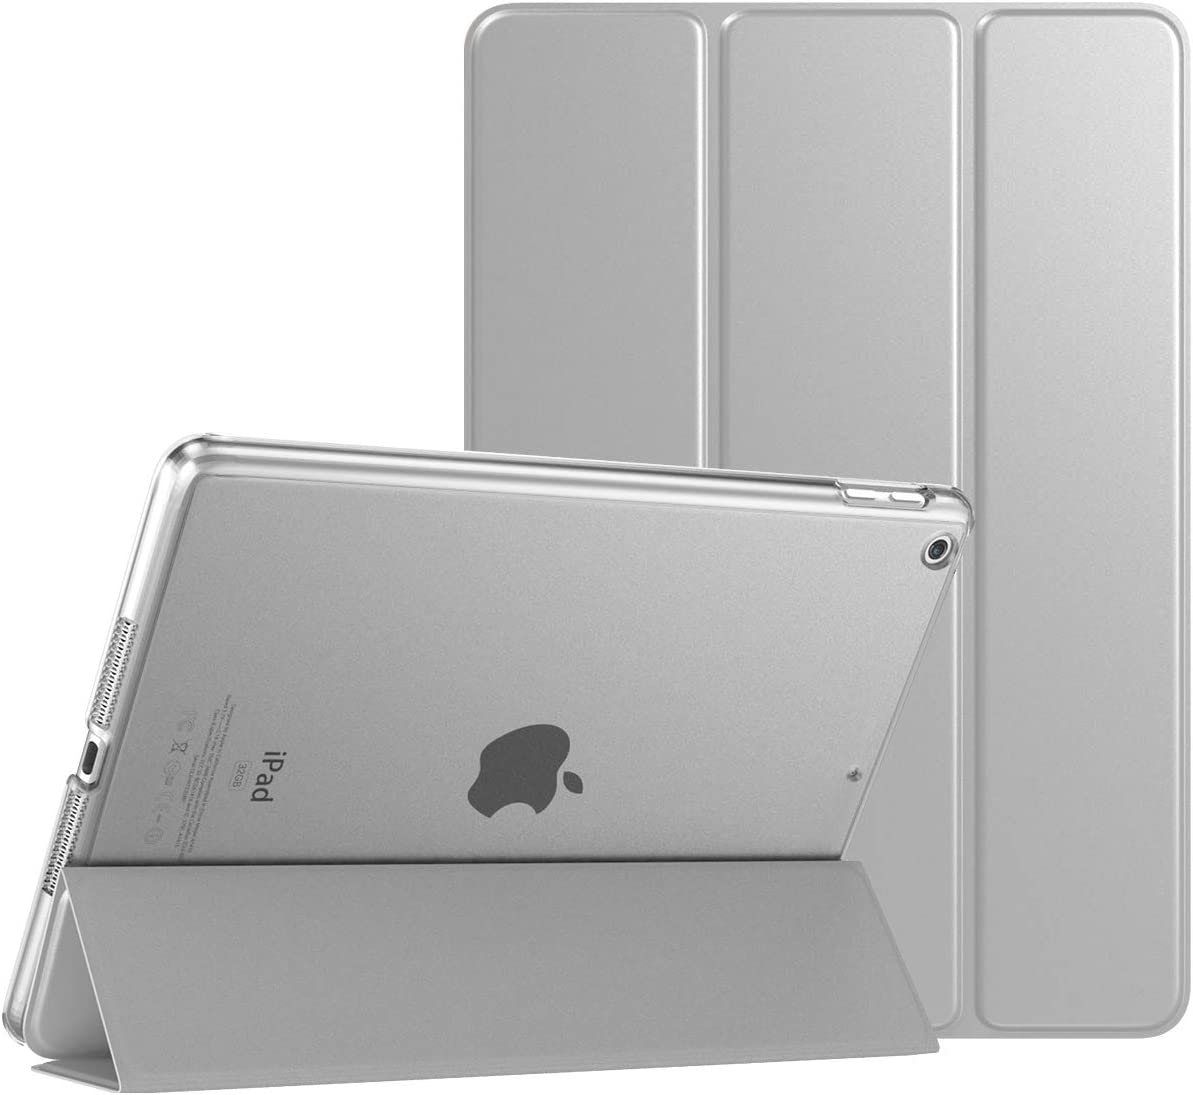 """TiMOVO Case for New iPad 8th Generation 2020 / iPad 7th Generation 10.2"""" 2019, Slim Translucent Frosted Back Protective Smart Cover Case with Auto Wake/Sleep for iPad 10.2-inch - Silver"""